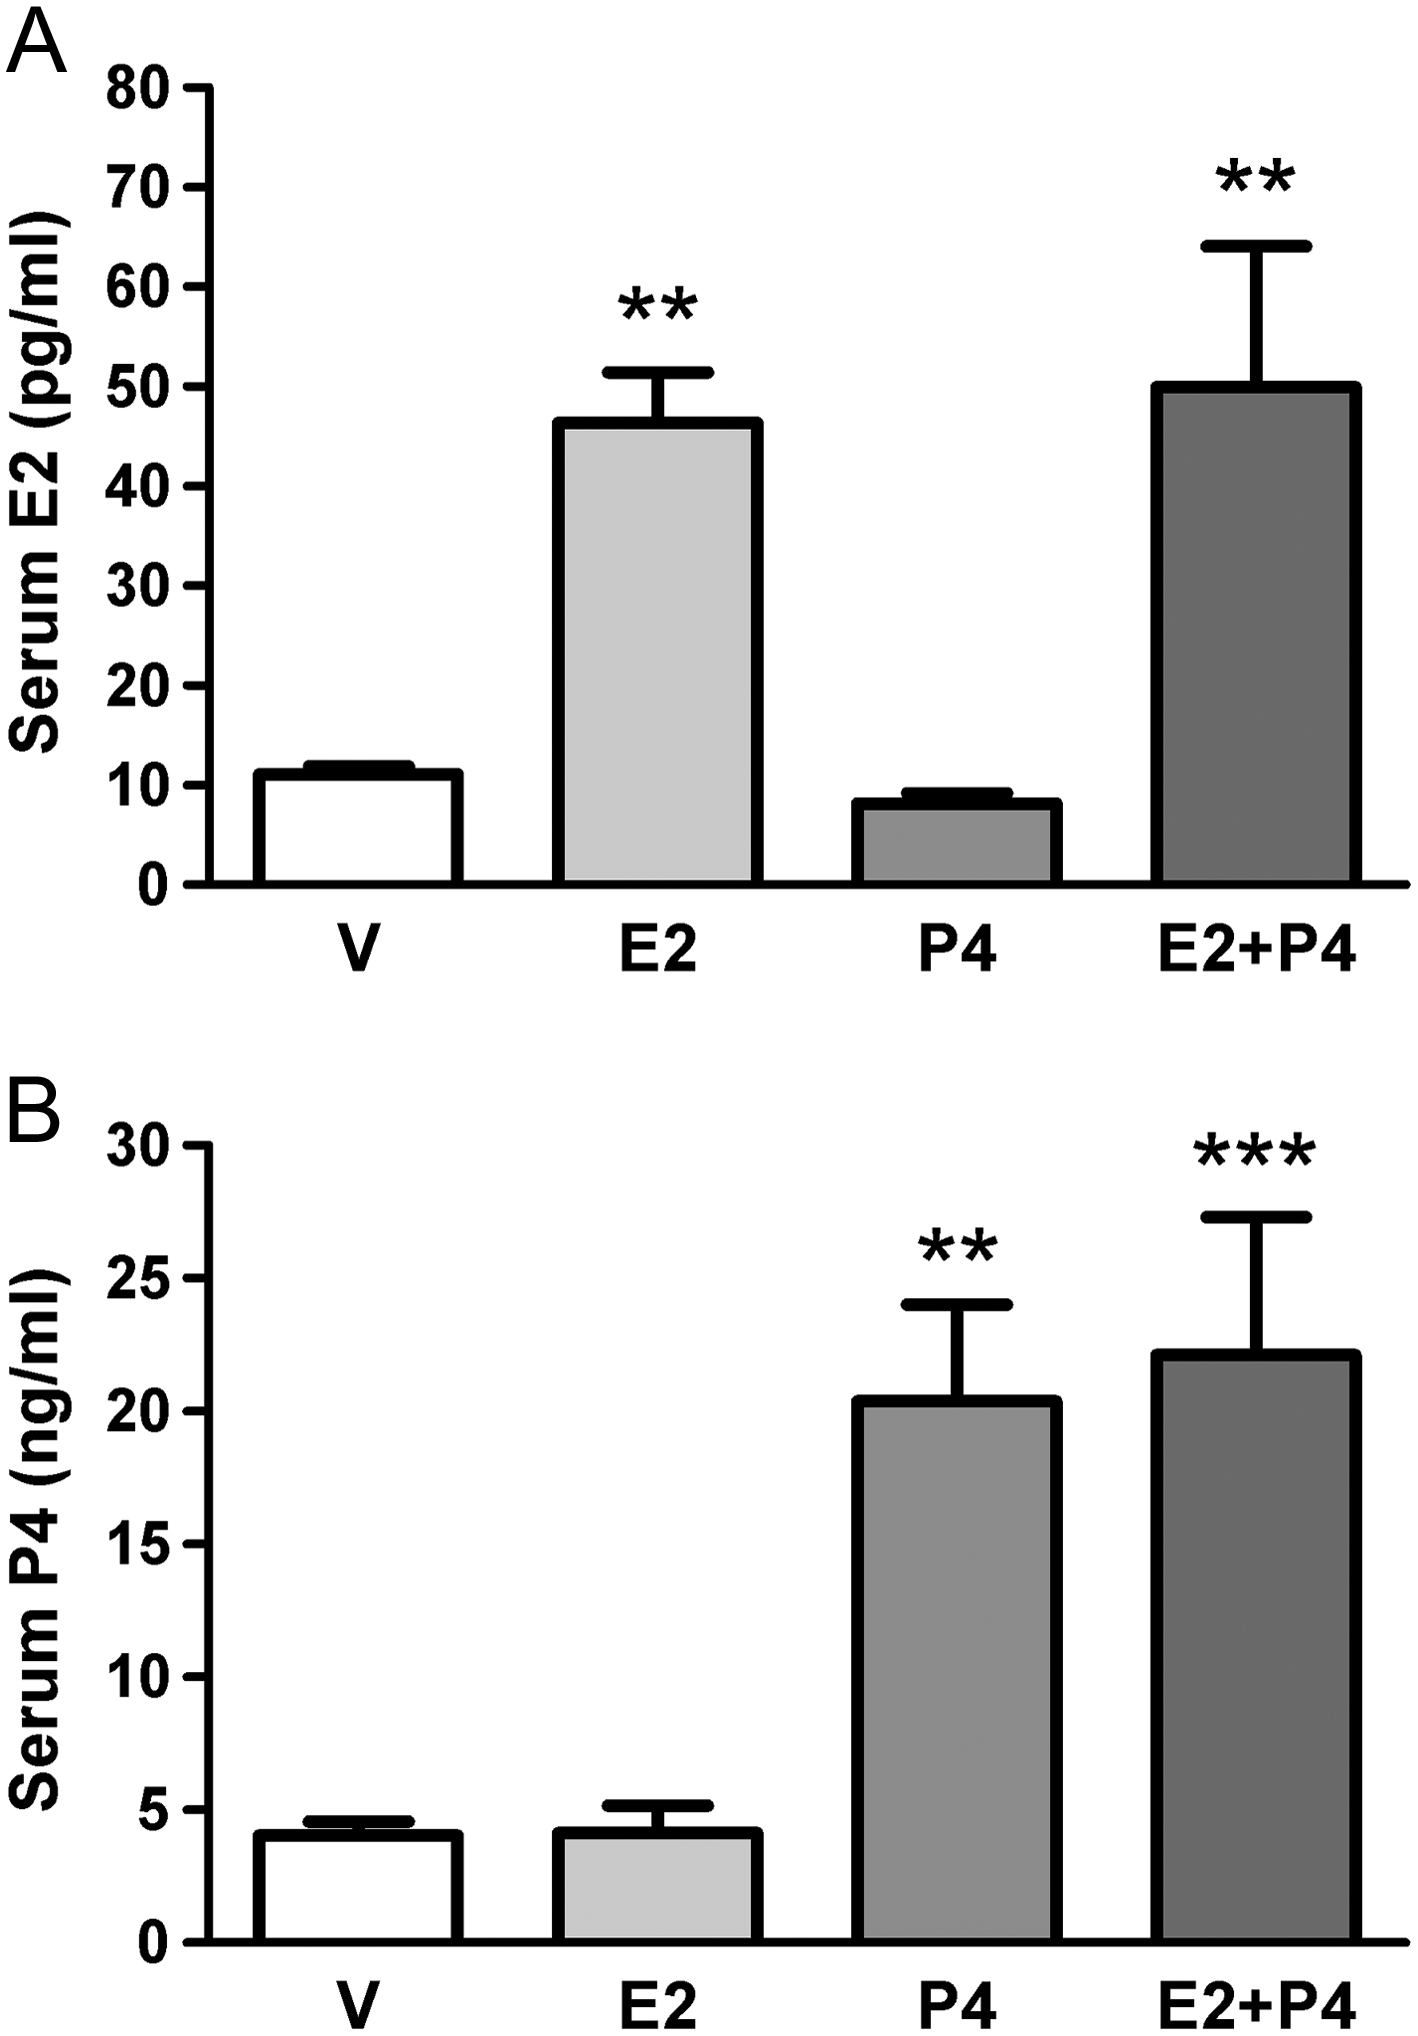 Estradiol And Progesterone Regulate Proliferation And Apoptosis In Colon Cancer In Endocrine Connections Volume 8 Issue 3 2019